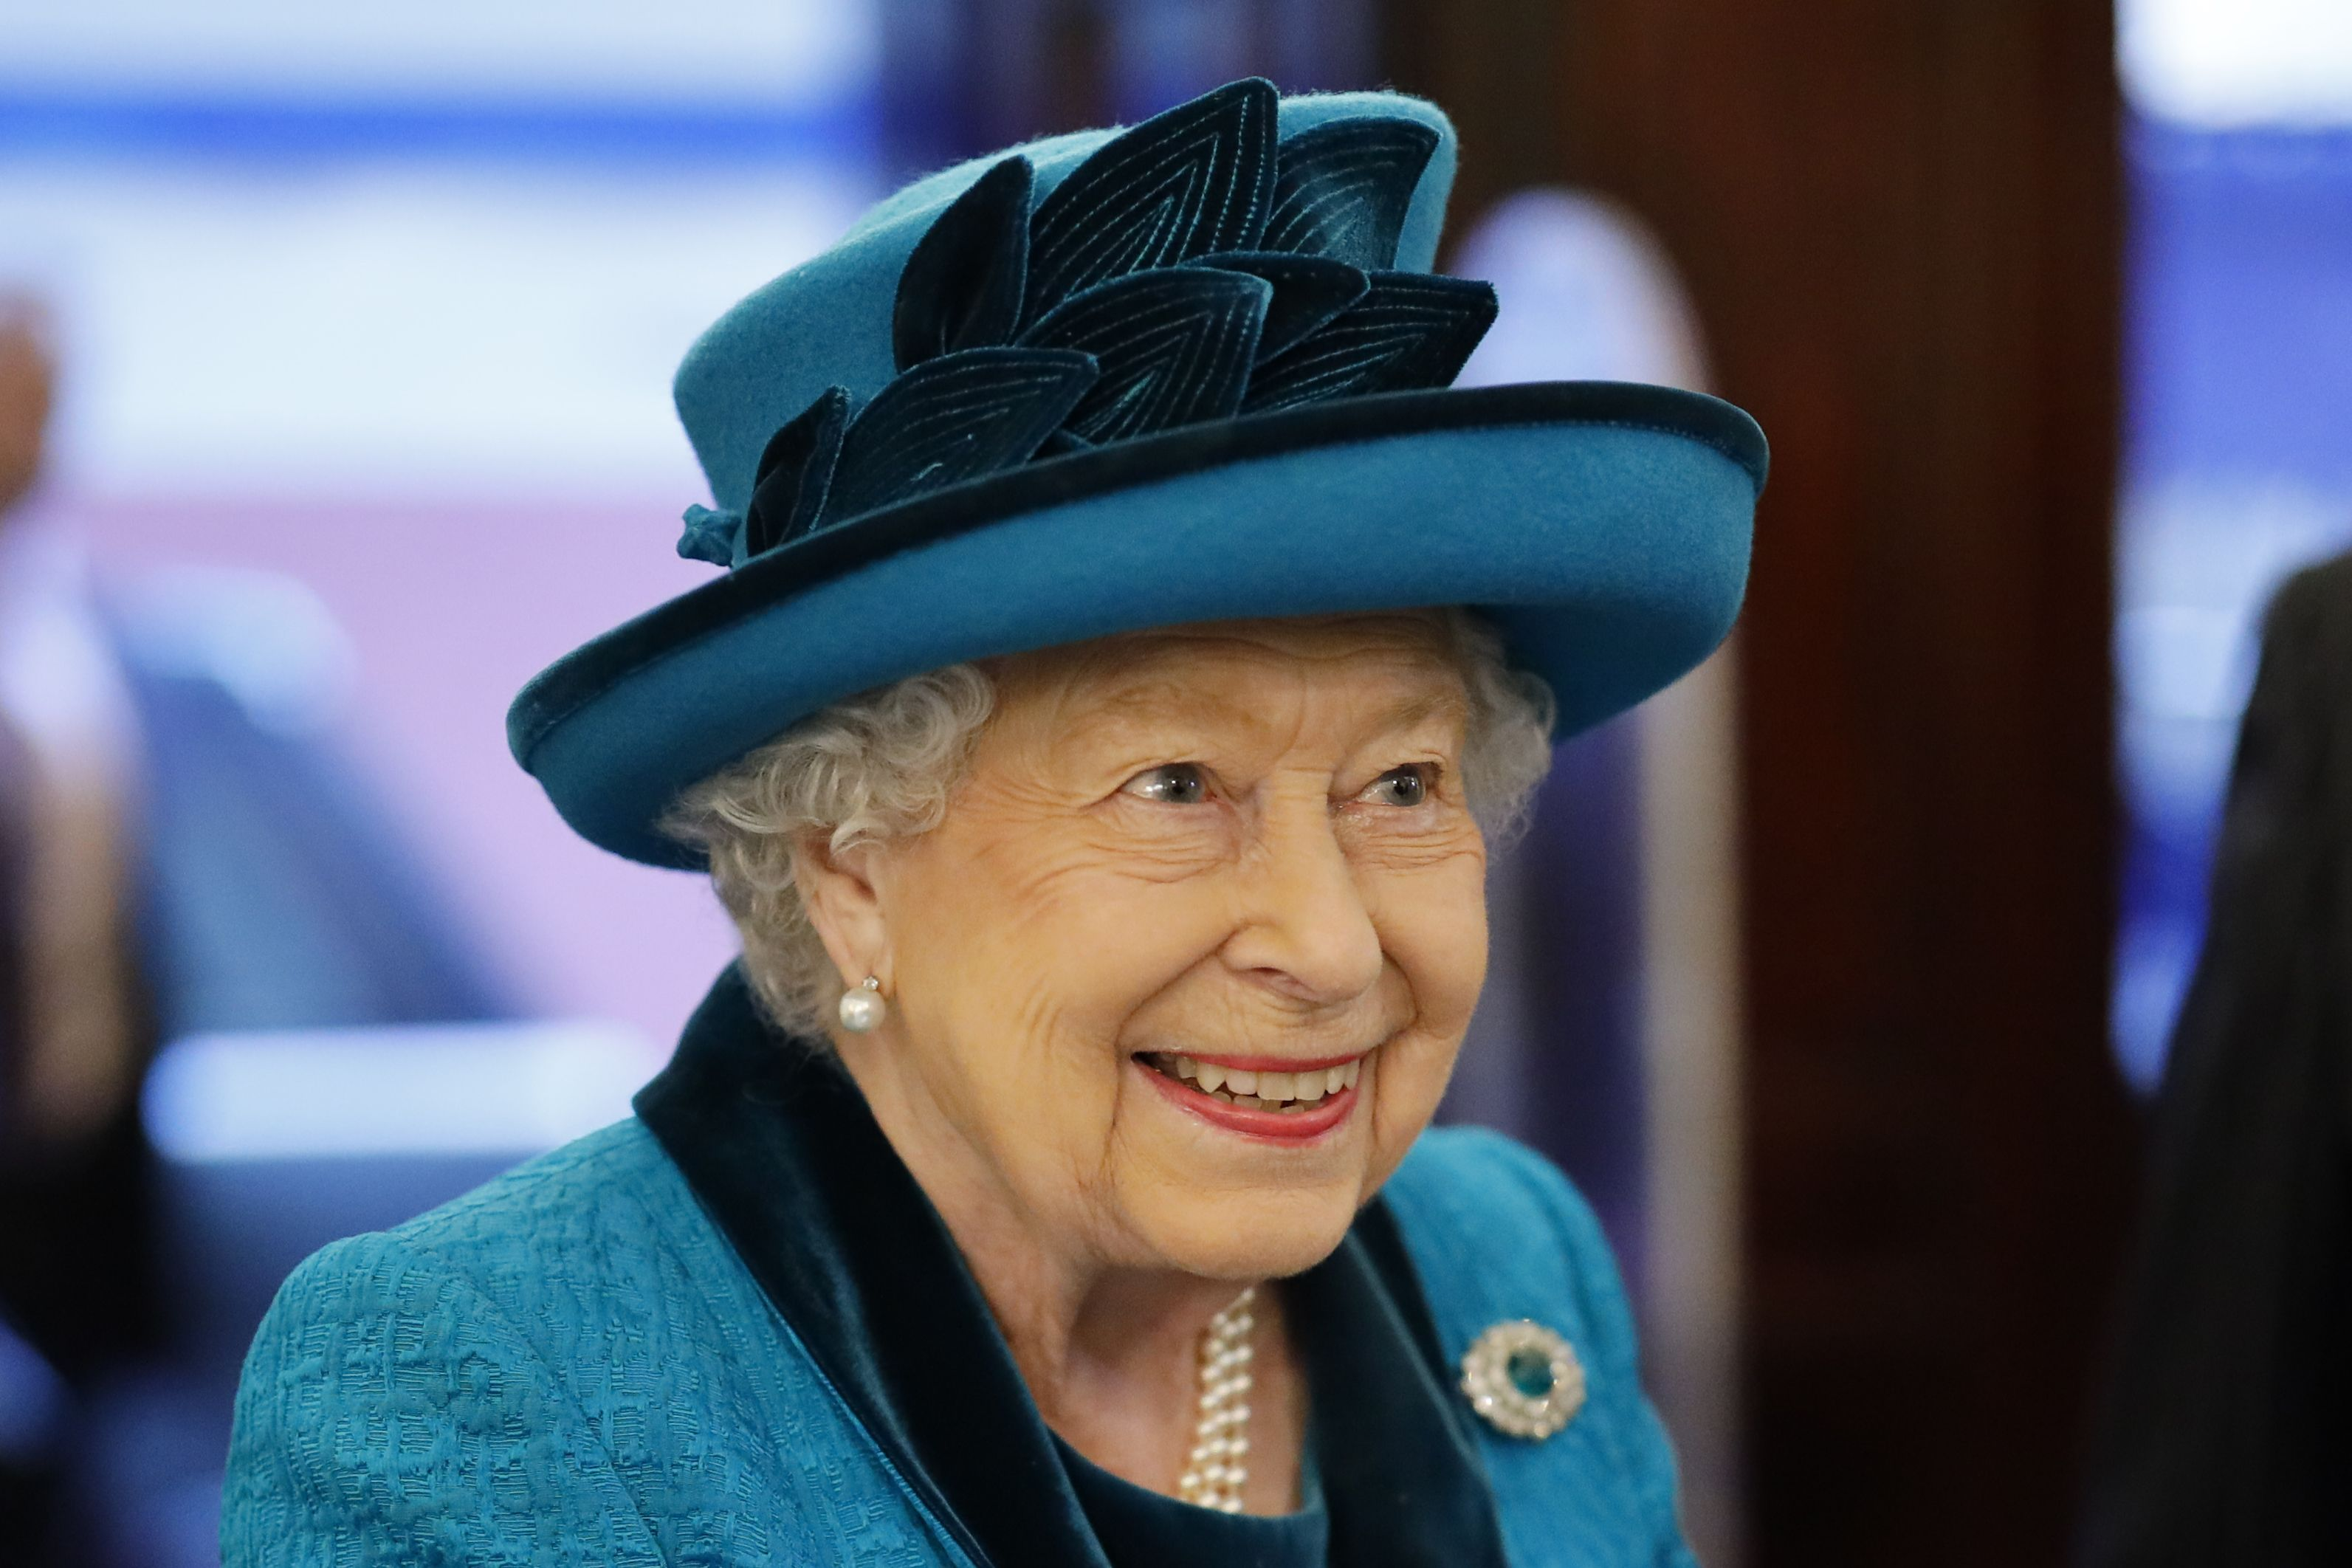 The Queen uses 3 specific words to show when she disapproves